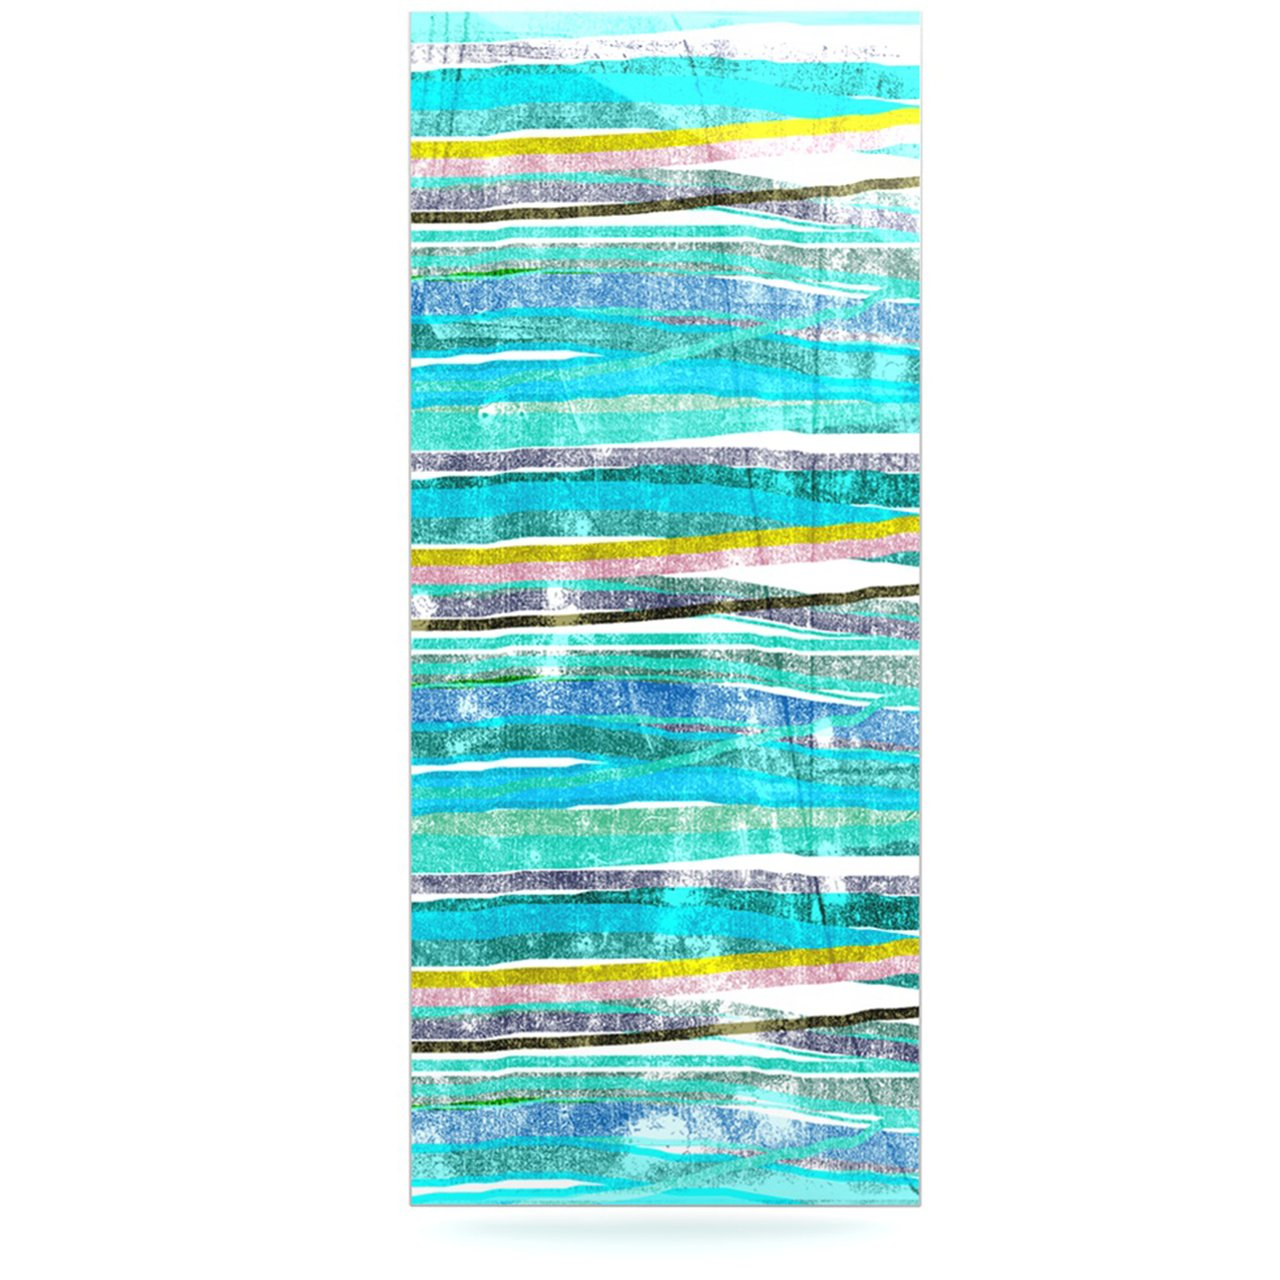 24 x 36 Kess InHouse Frederic Levy-Hadida Fancy Stripes Acqua Luxe Rectangle Panel